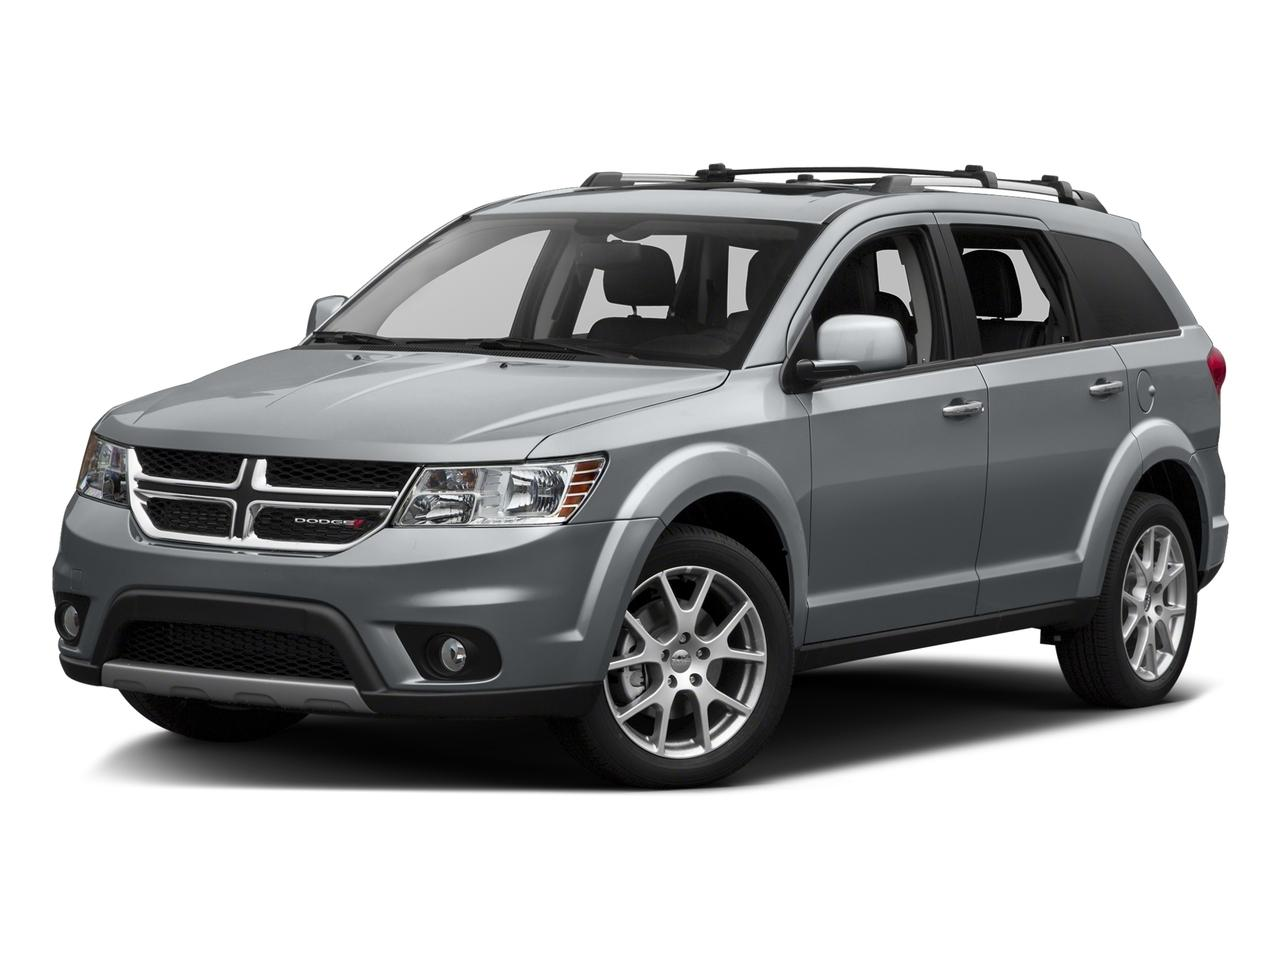 2016 Dodge Journey Vehicle Photo in Midland, TX 79703